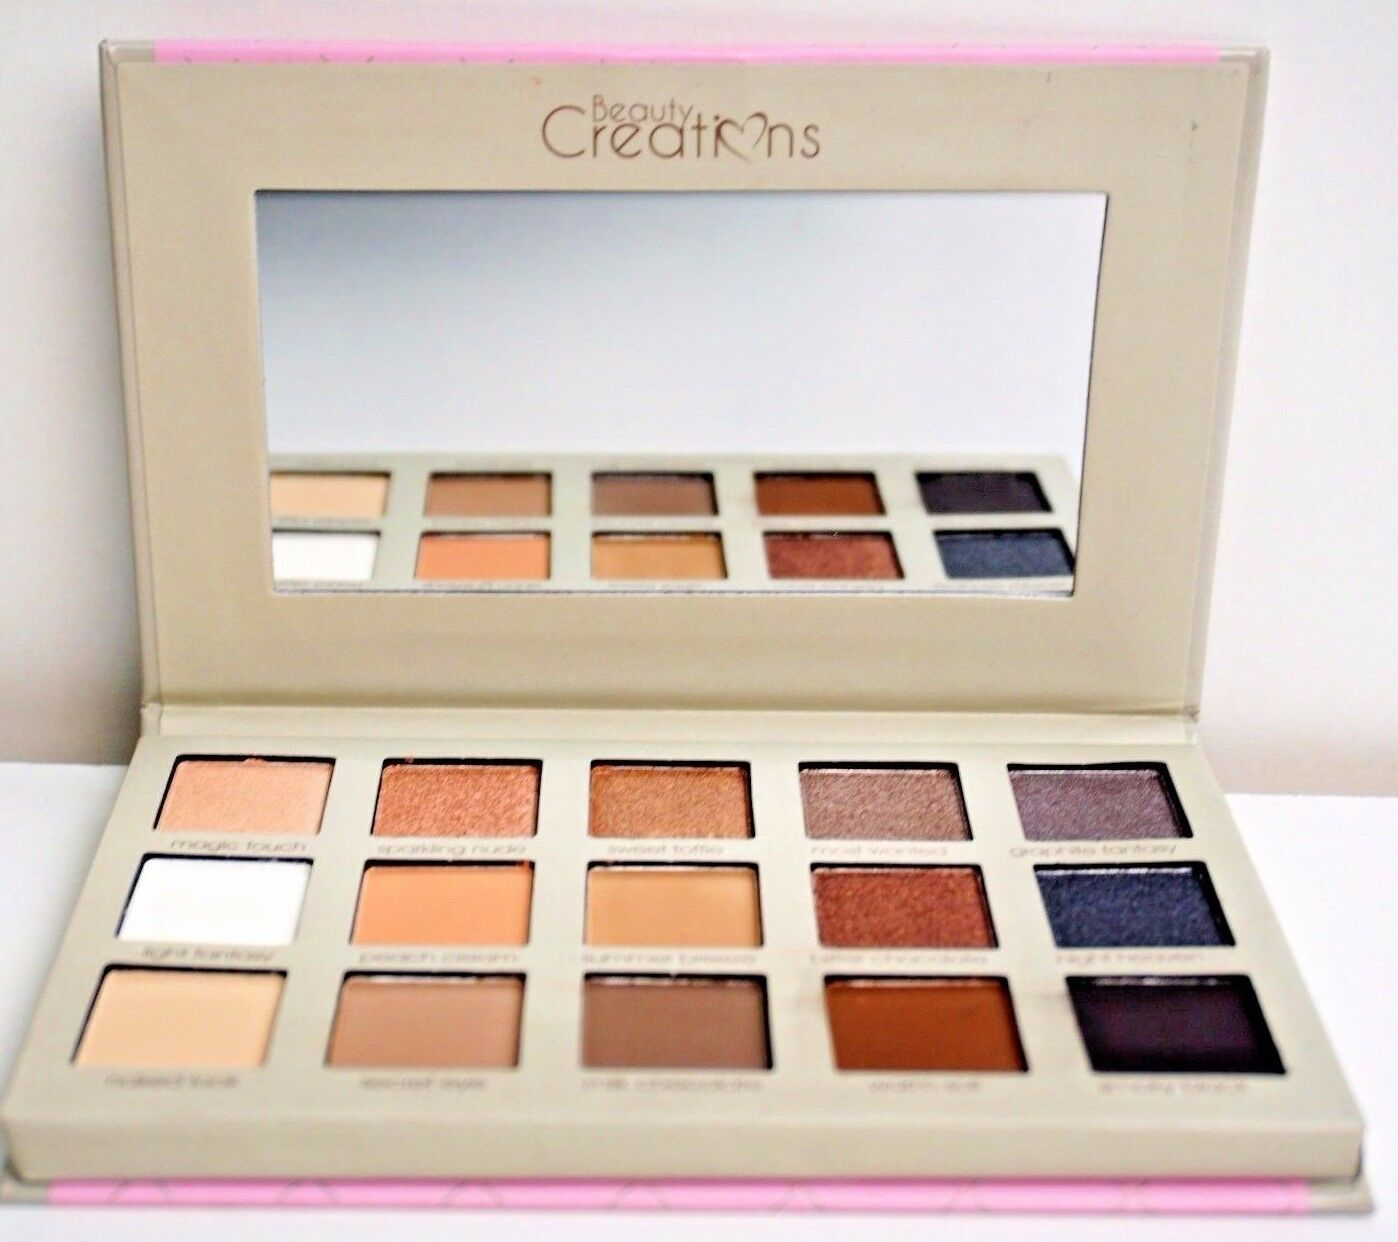 Beauty Creations Butterfly Eyeshadow Palette 996 Picclick Tease Me 1 Of 3free Shipping